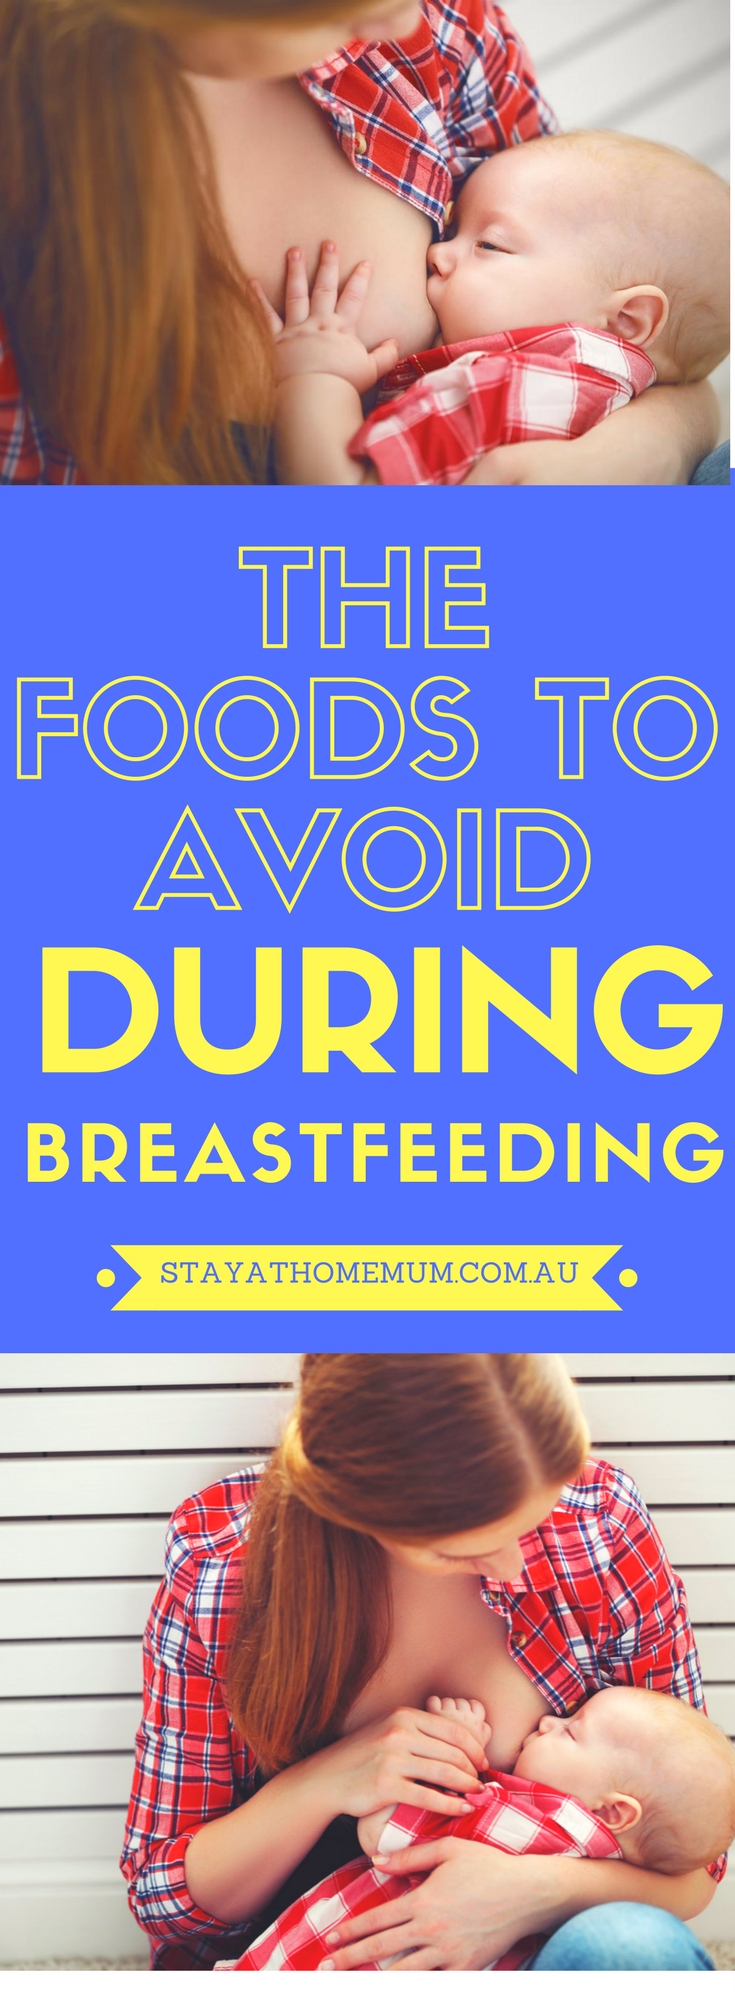 The Foods to Avoid During Breastfeeding | Stay At Home Mum